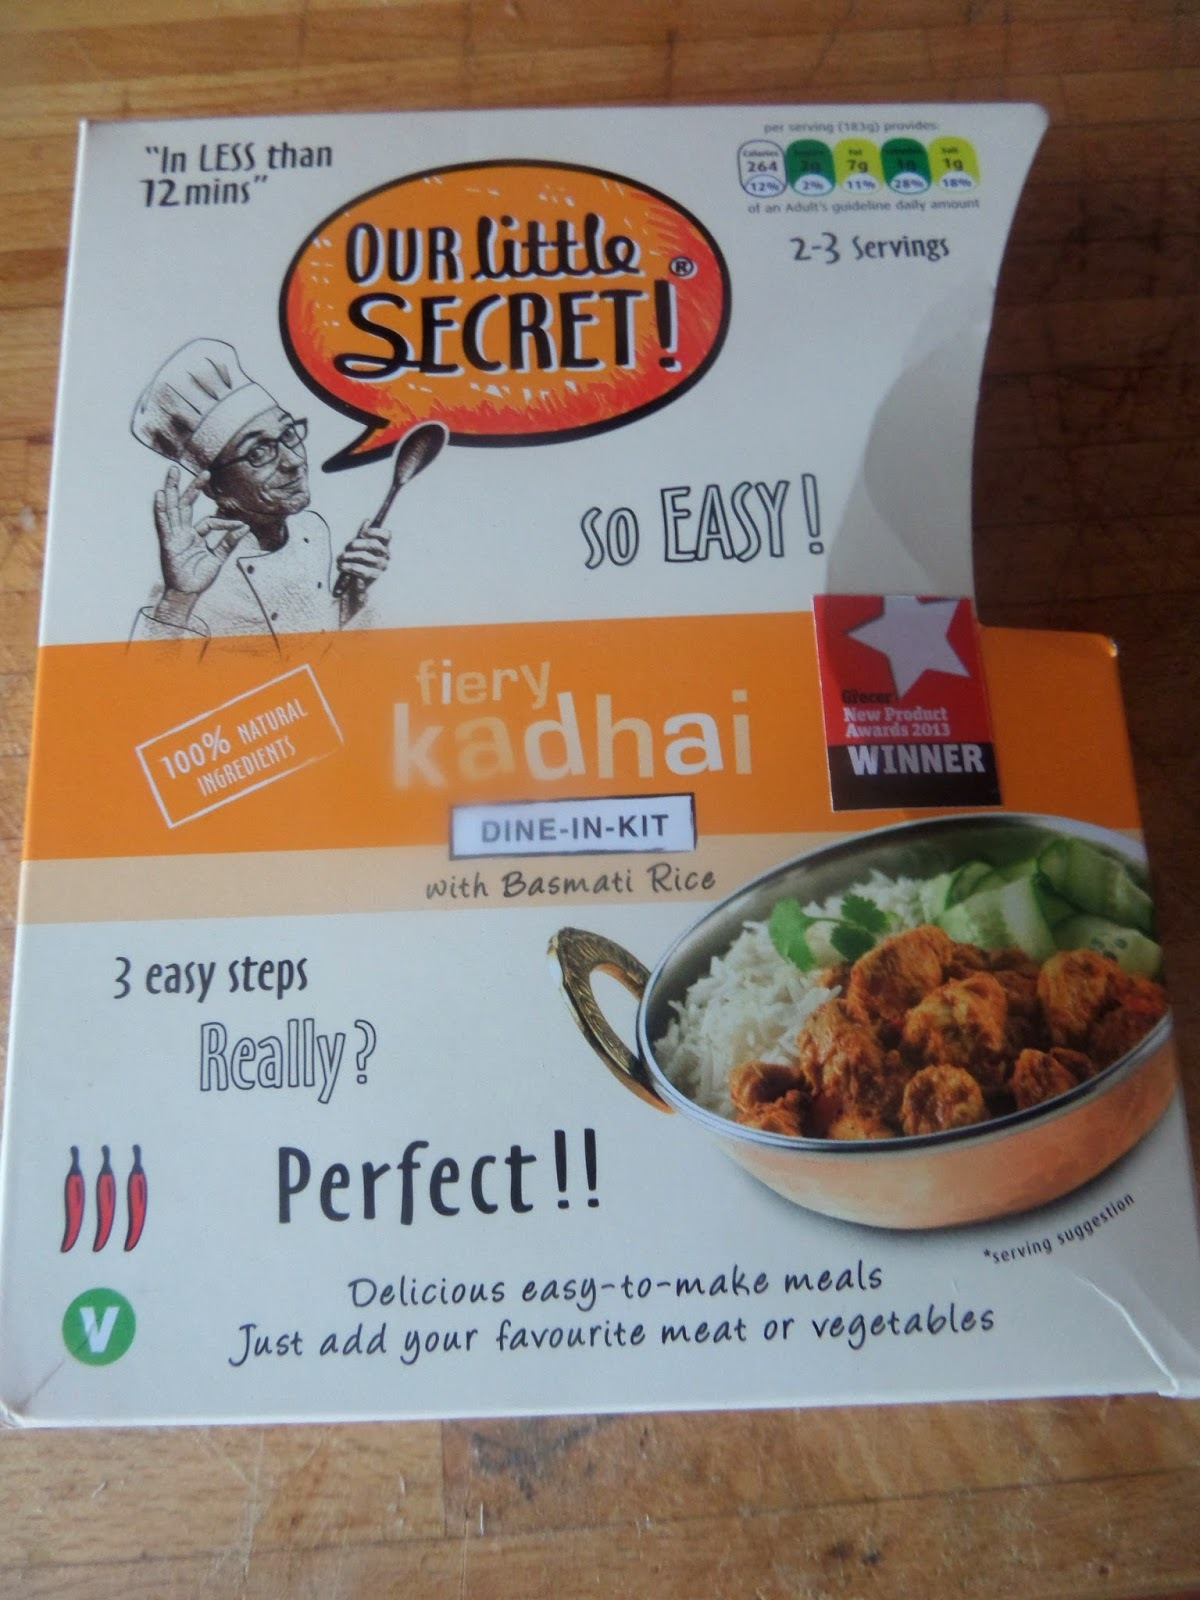 Our Little Secret Fiery Kadhai Dine-In Kit with Basmati Rice review